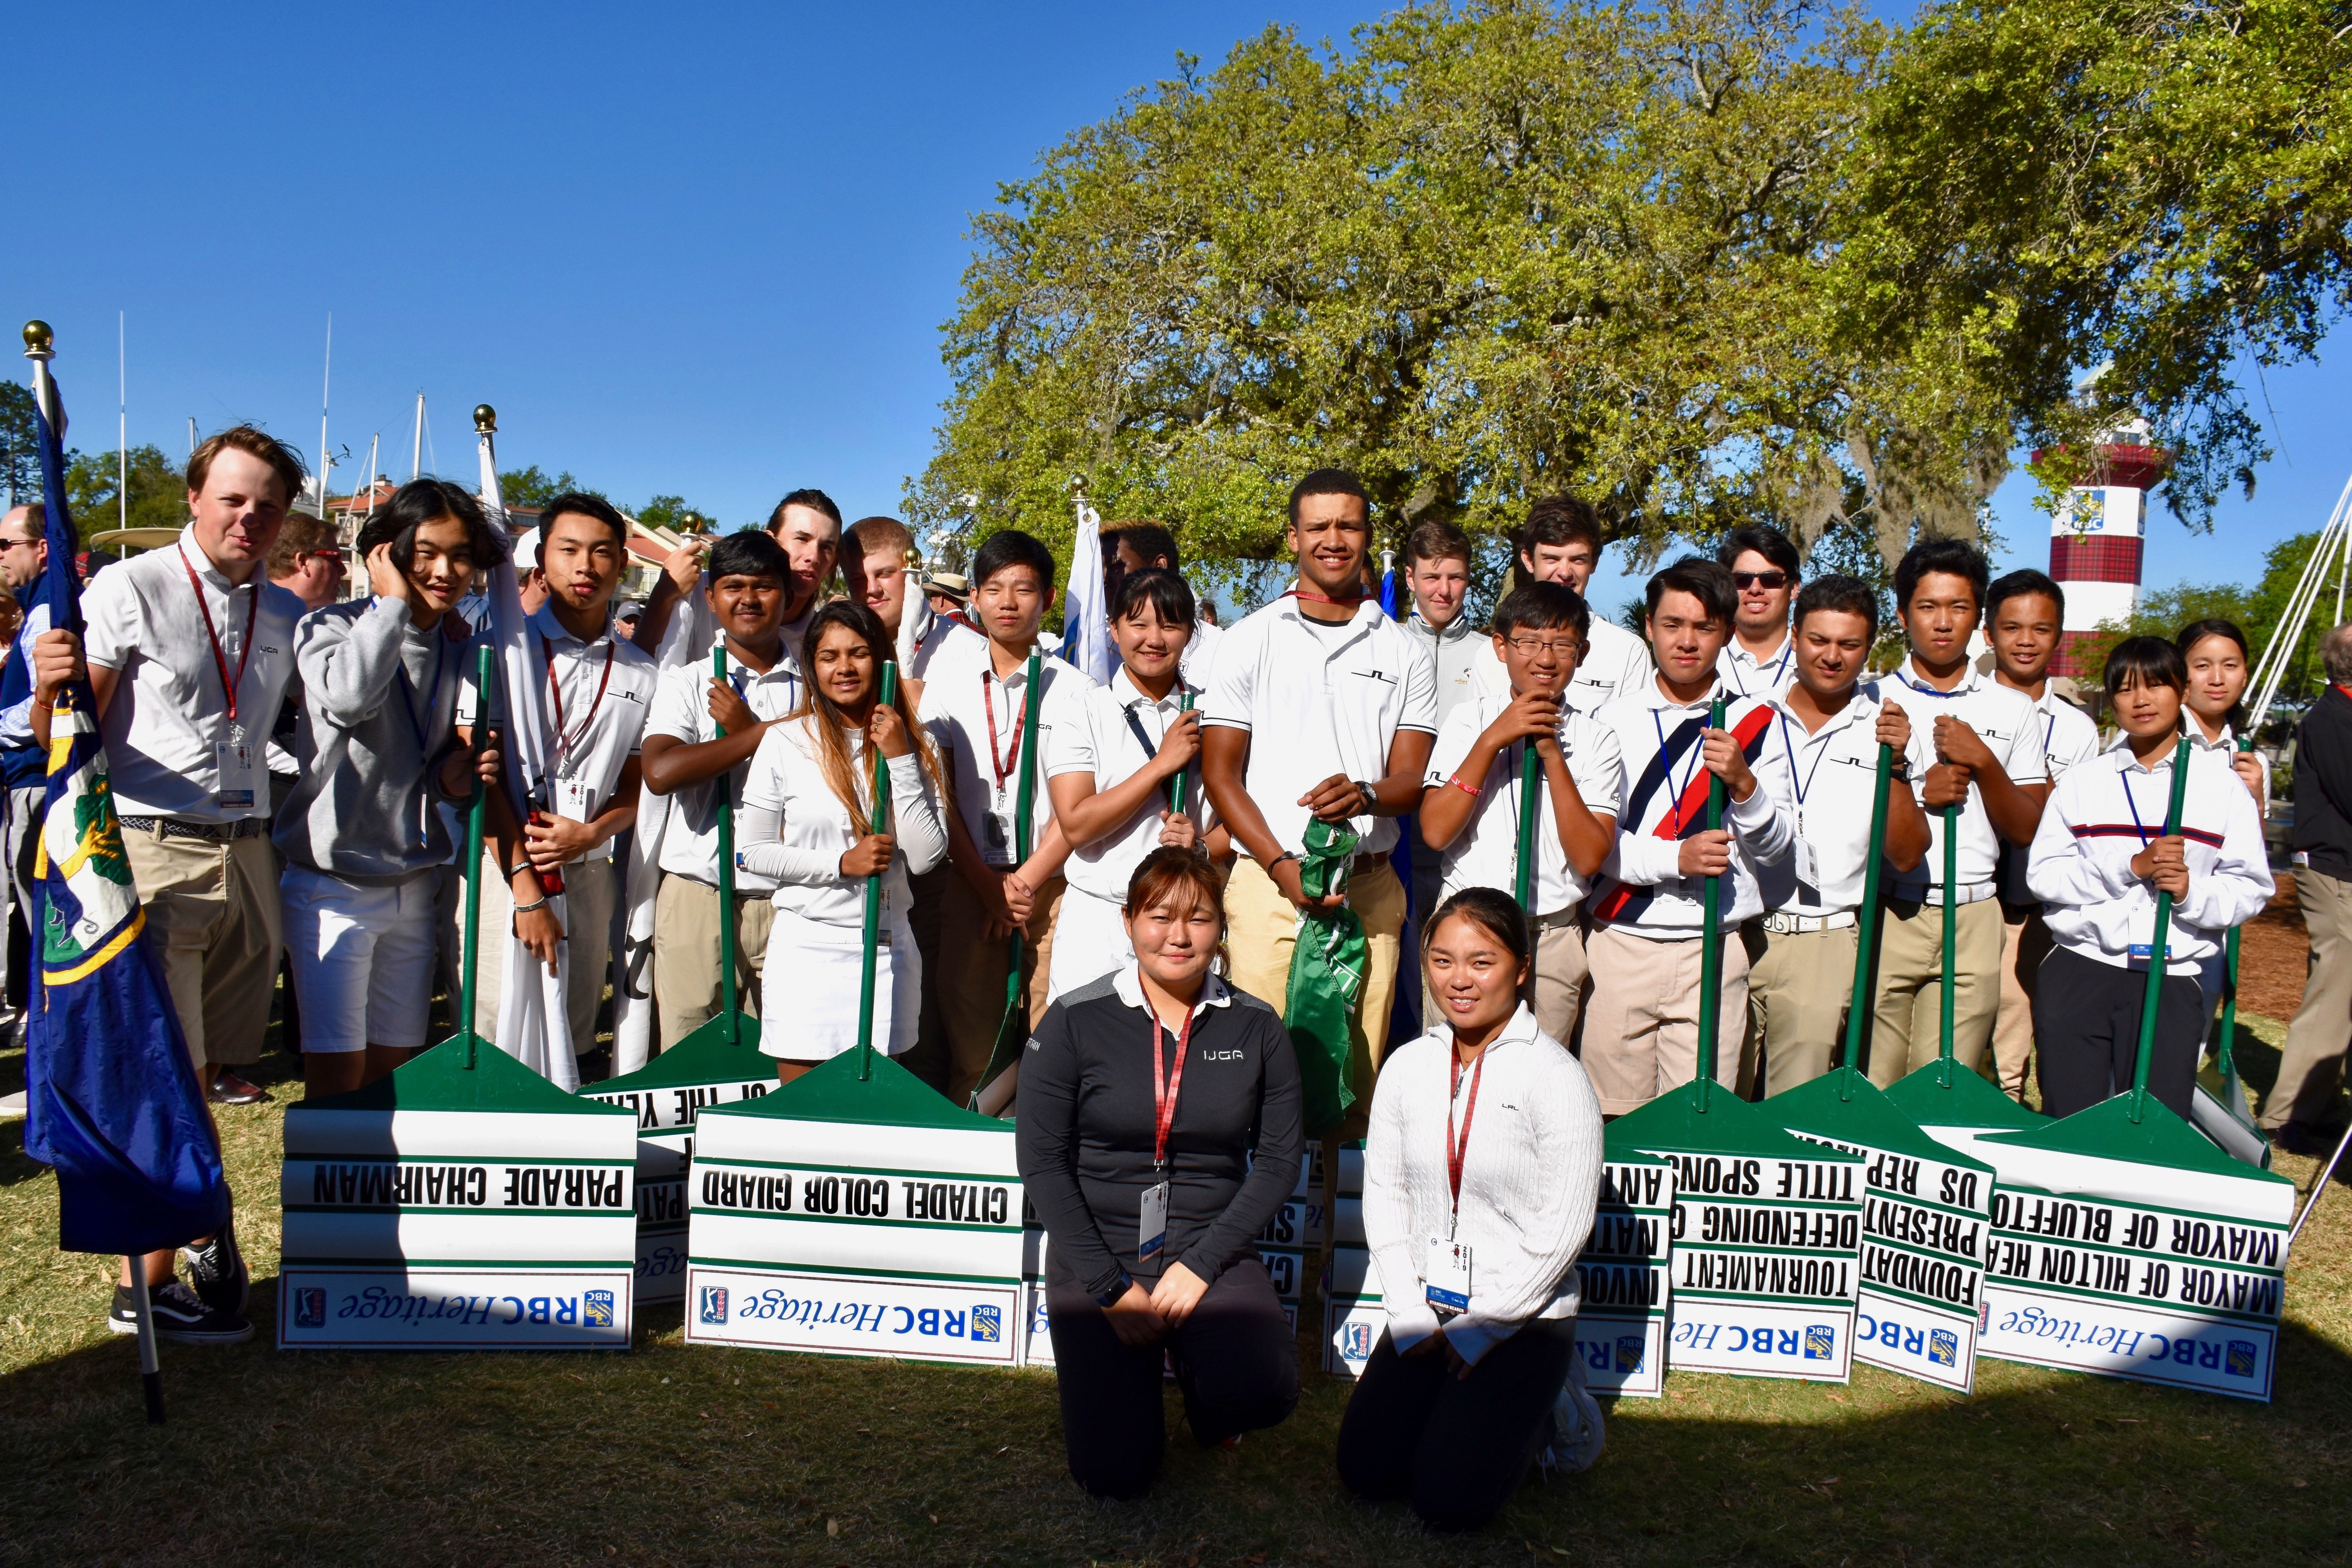 IJGA Student-Athletes Participate in the RBC Heritage Presented by Boeing